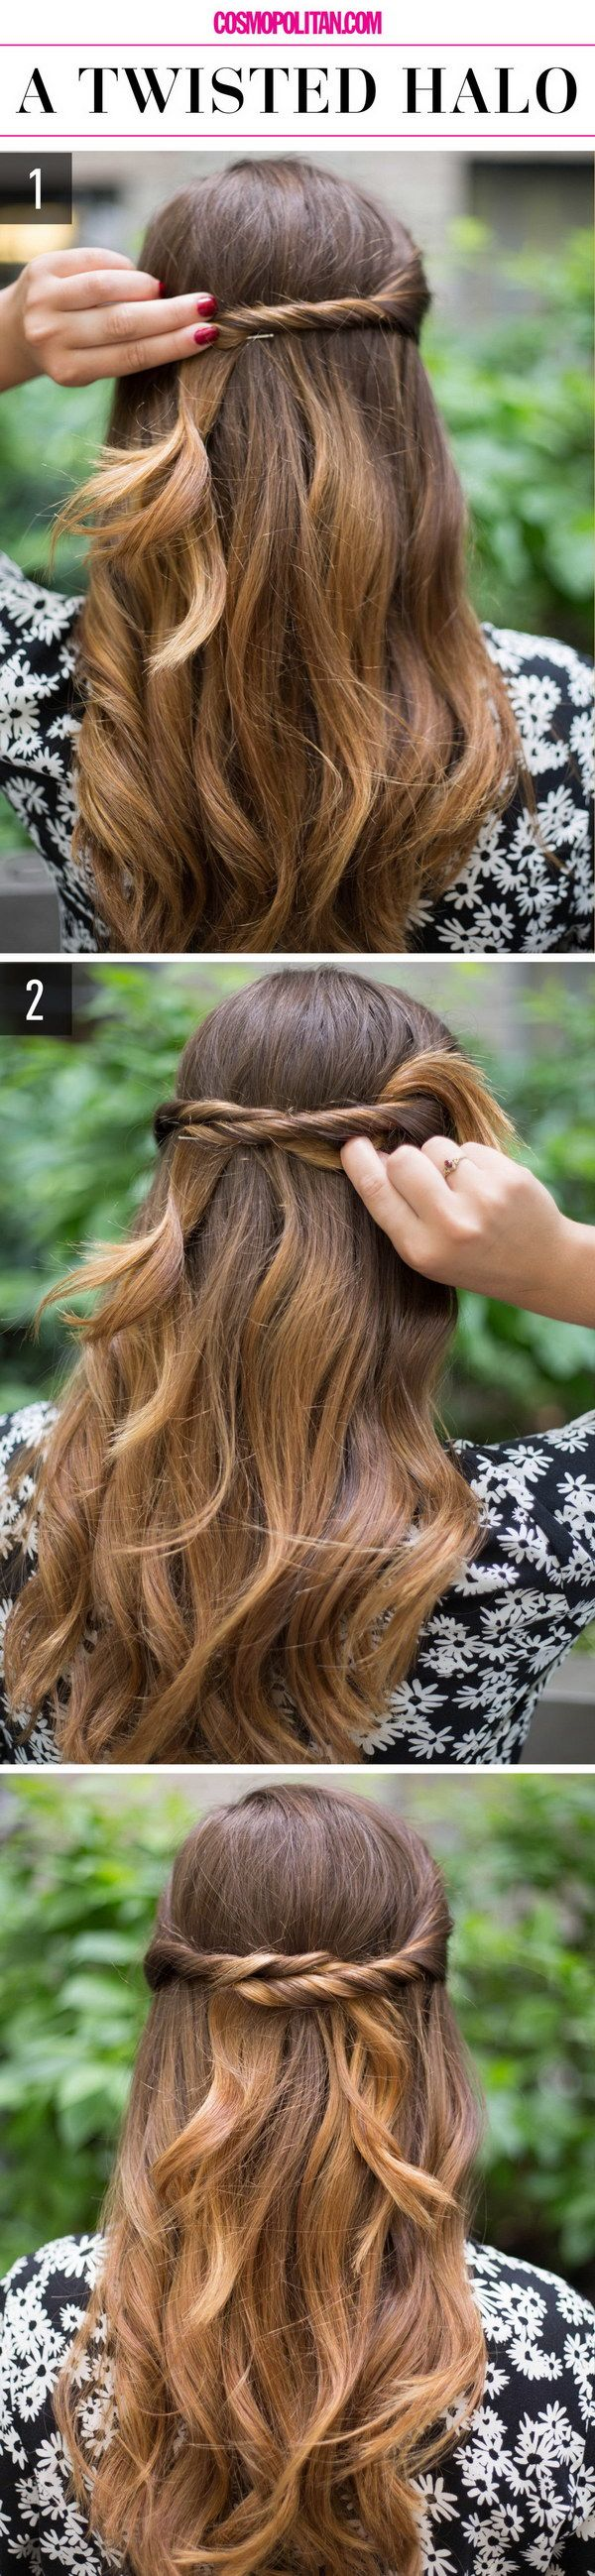 Half Up Half Down Hairstyle: Twisted Halo.